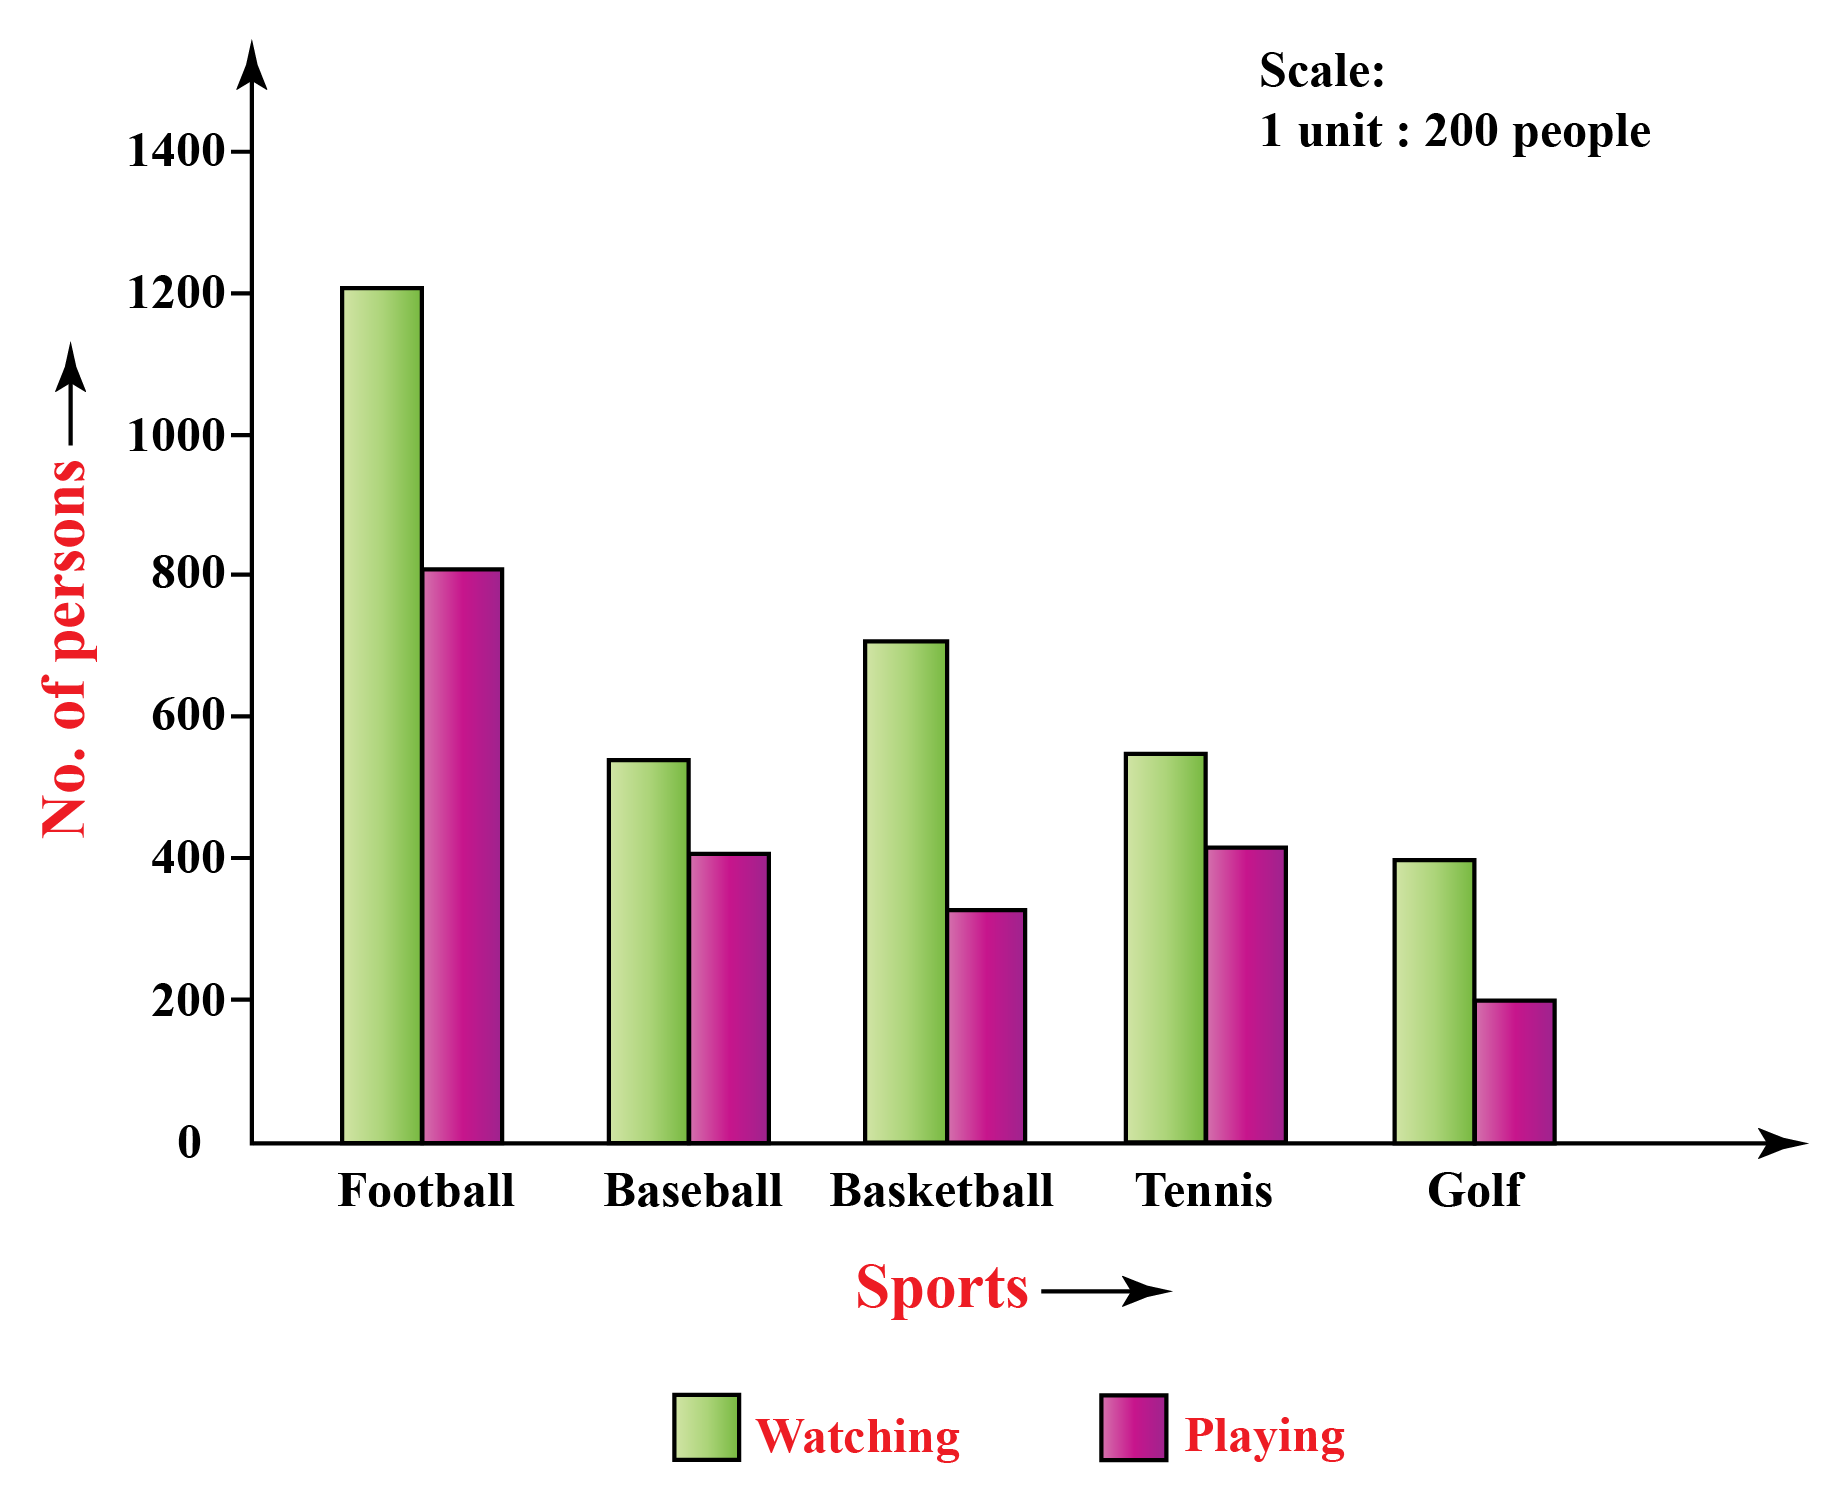 The data is represented by the double bar graph